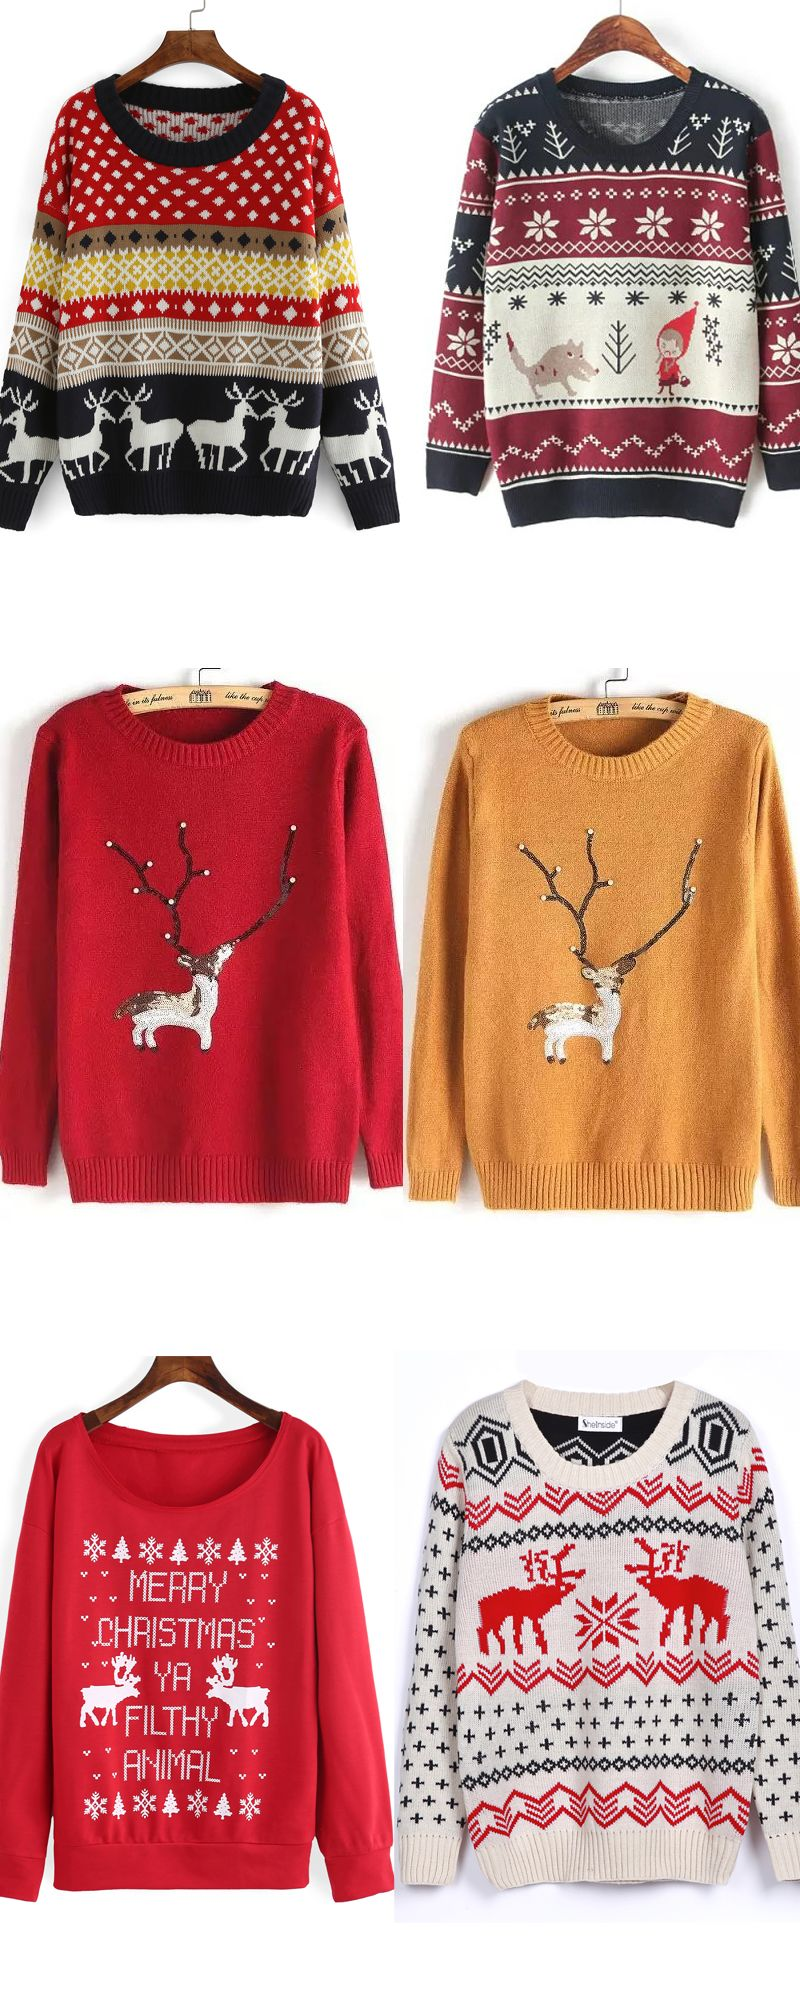 Christmas Sweaters Cute.Pin On Spotlights